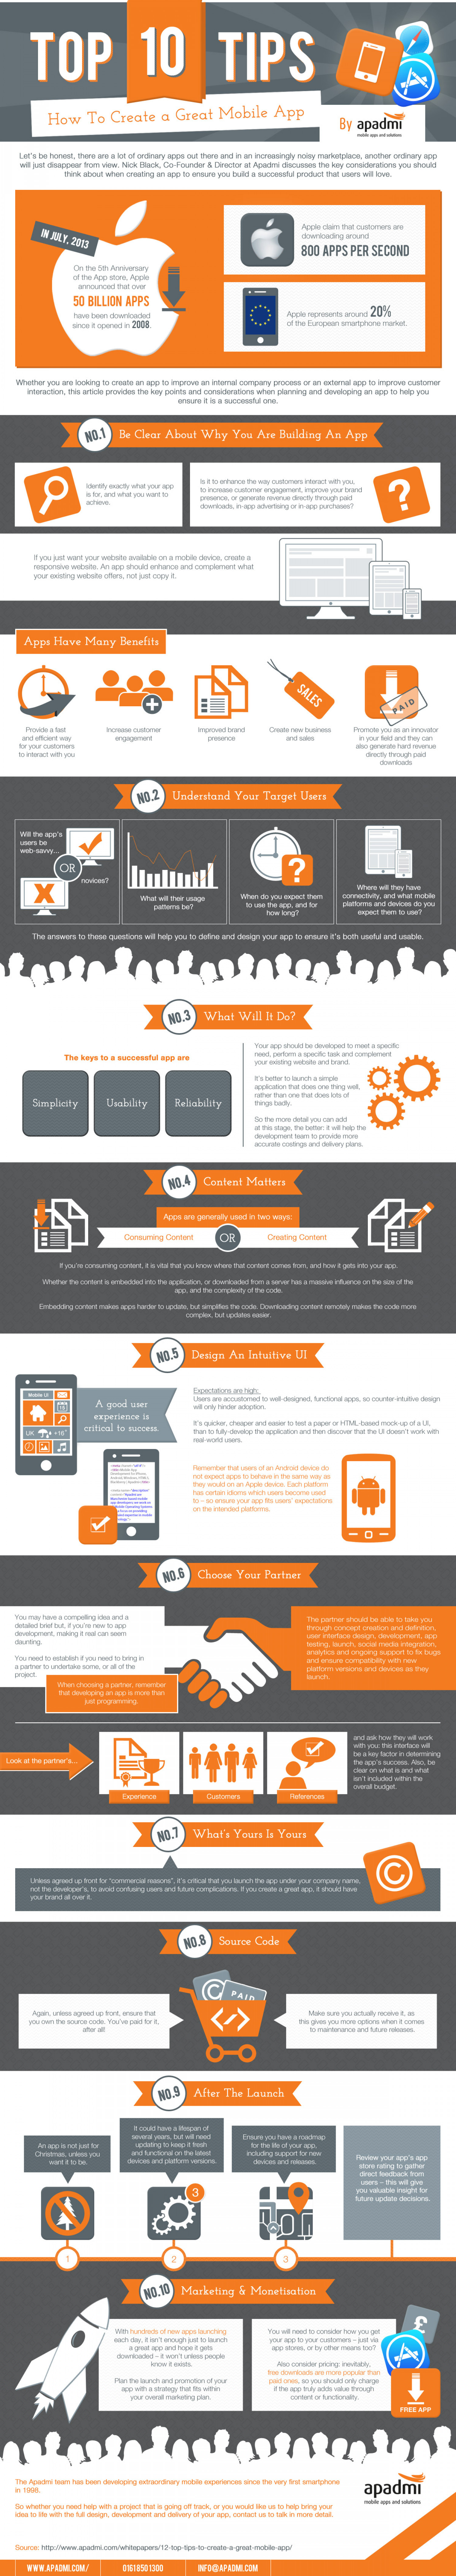 Top Ten Tips: How to Create a Great Mobile App Infographic